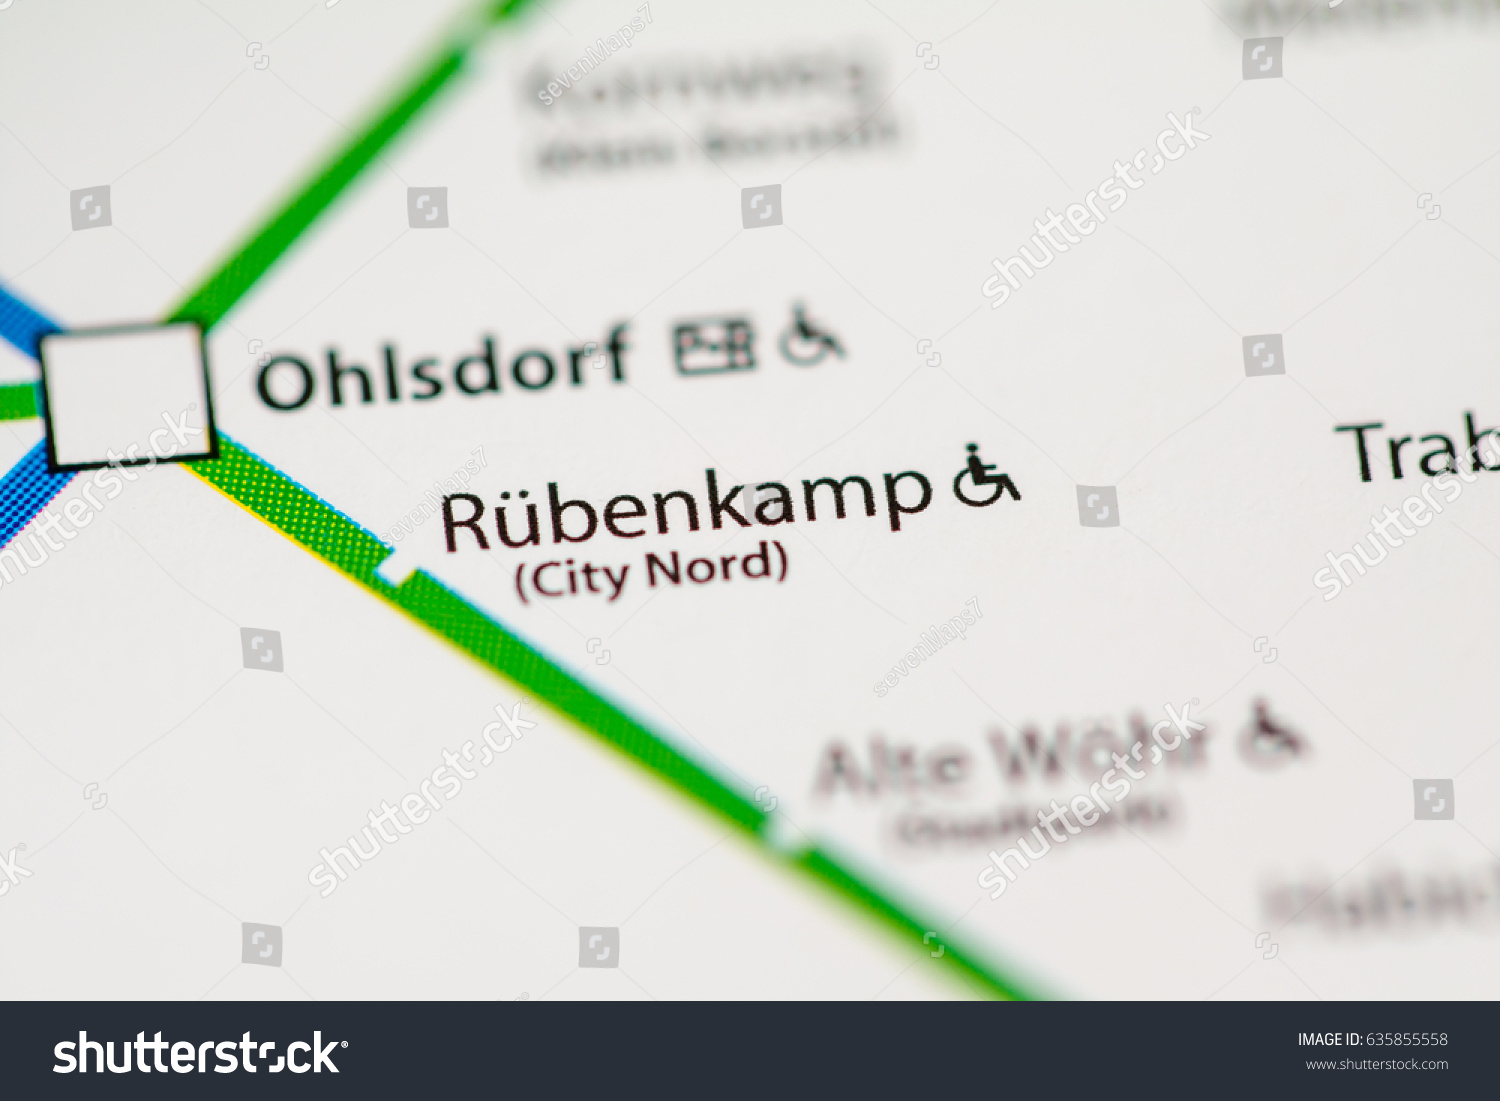 Hamburg Subway Map.Rubenkamp Station Hamburg Metro Map Stock Photo Edit Now 635855558